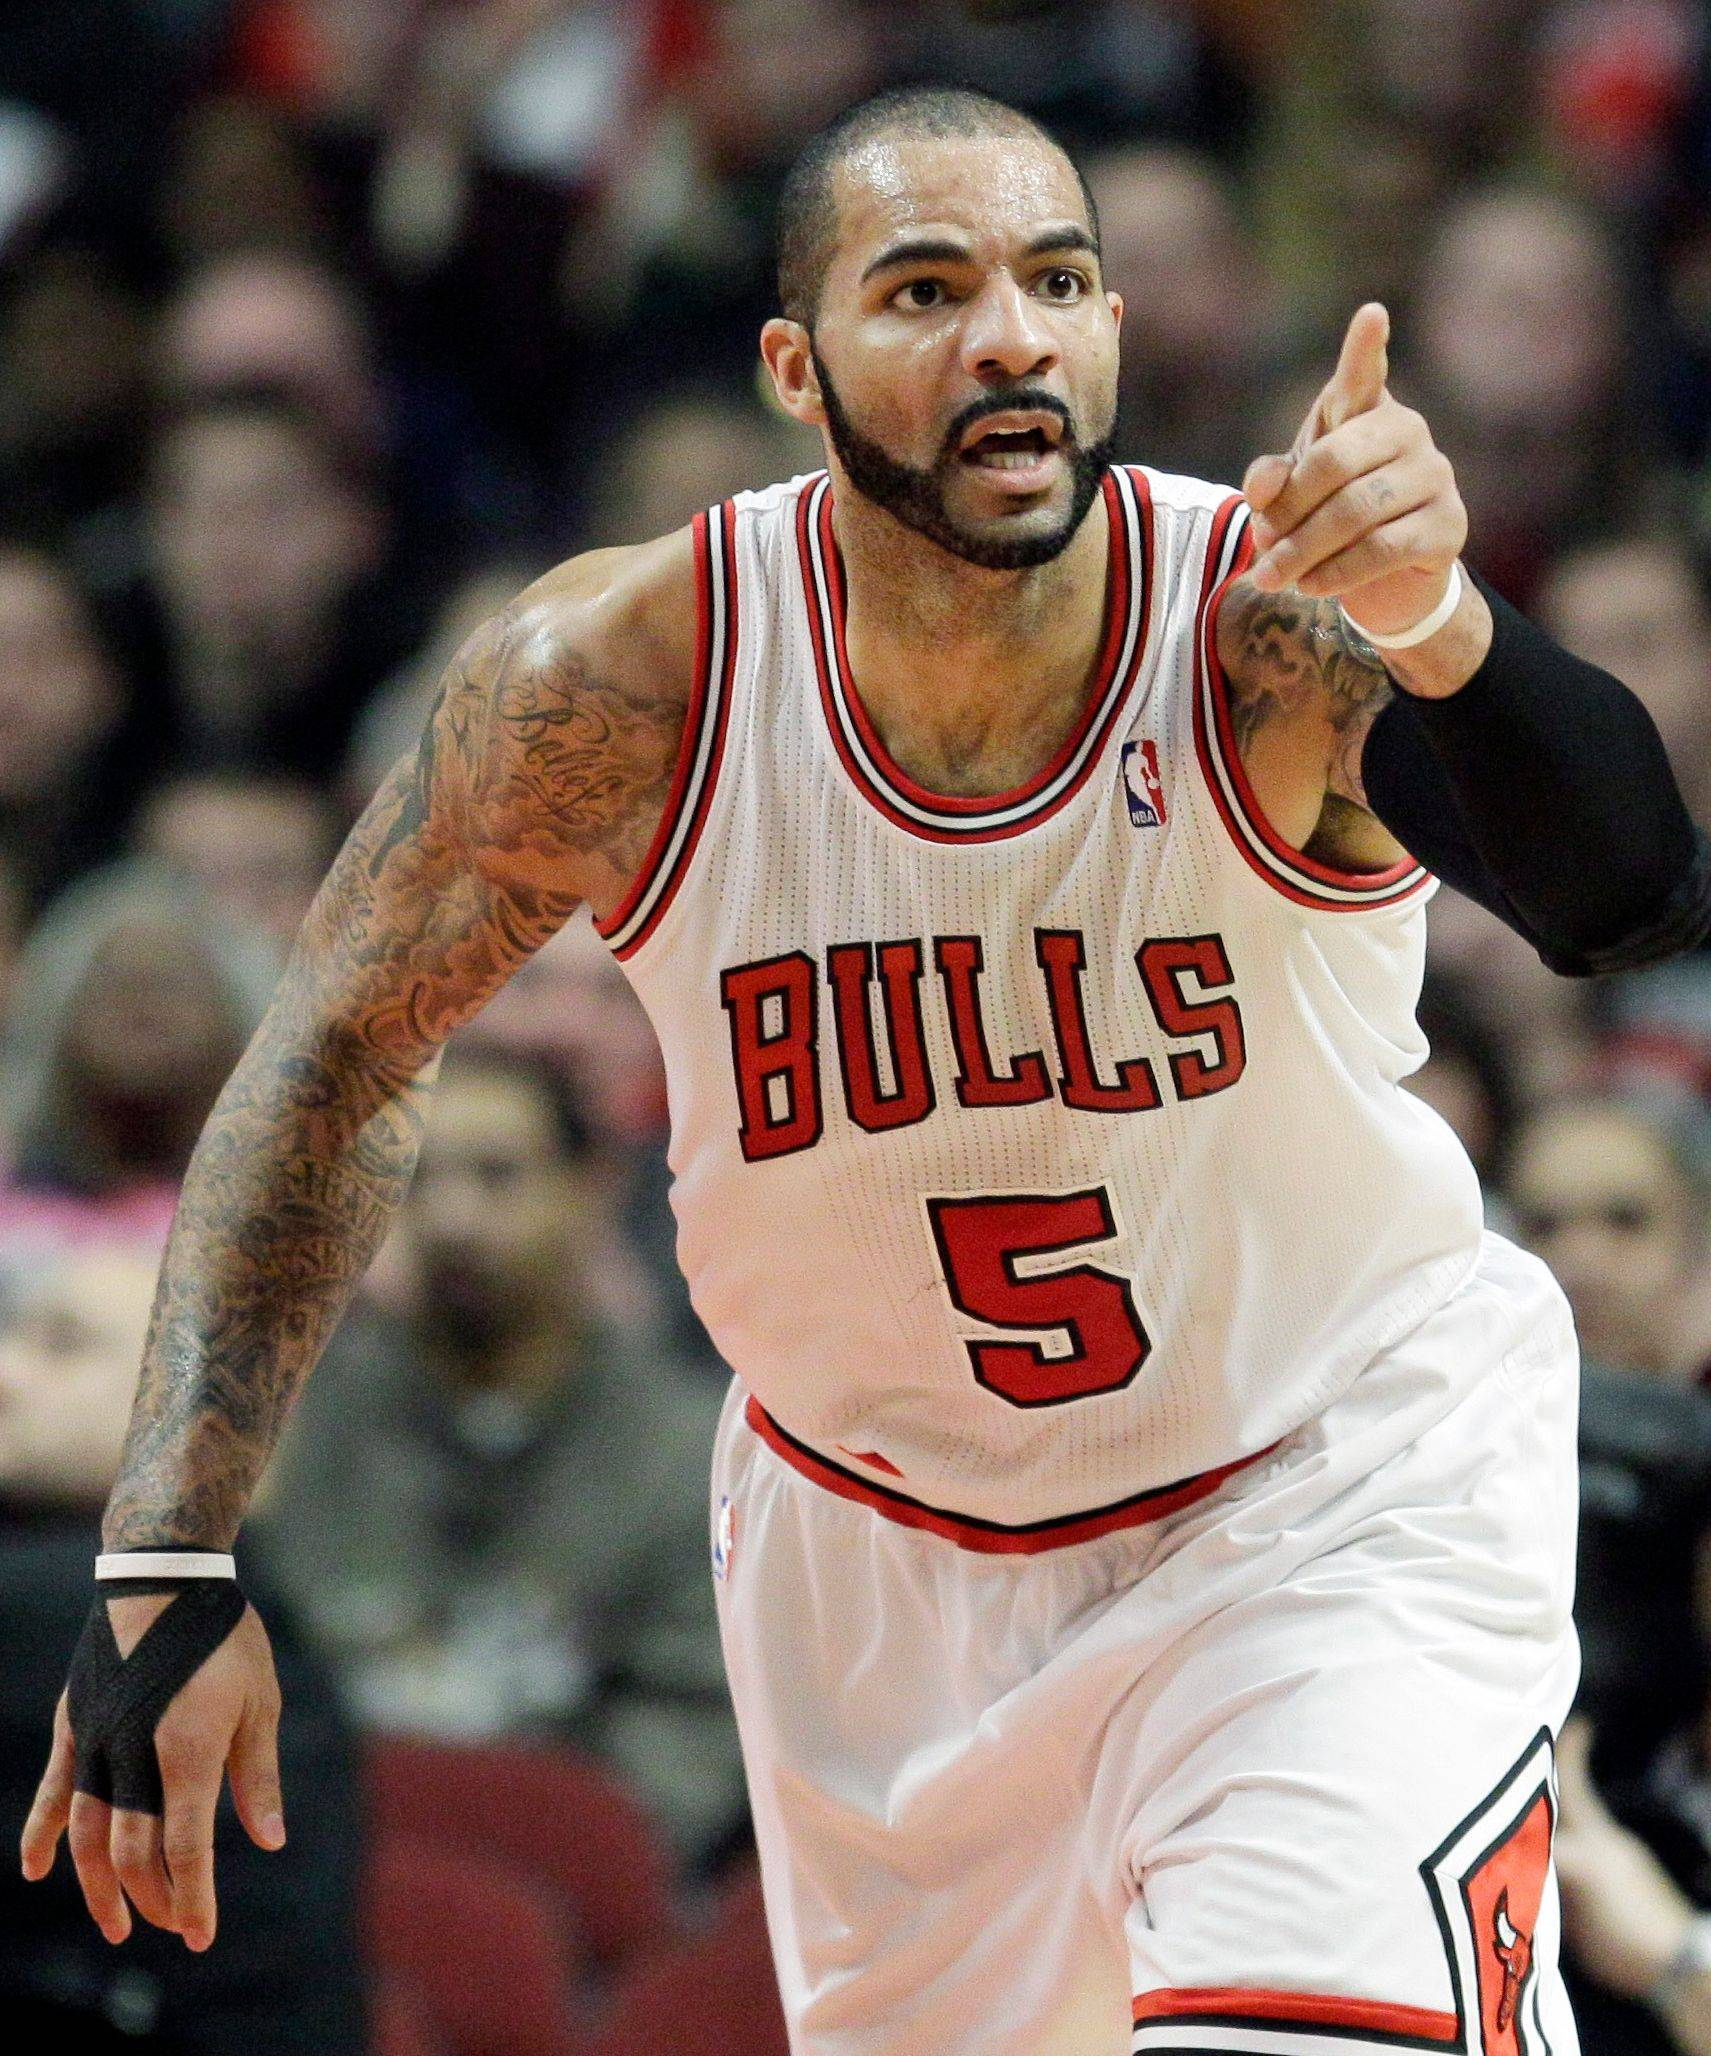 With just two contests remaining, Carlos Boozer figures to end up playing in every game of a season for the first time in his NBA career.